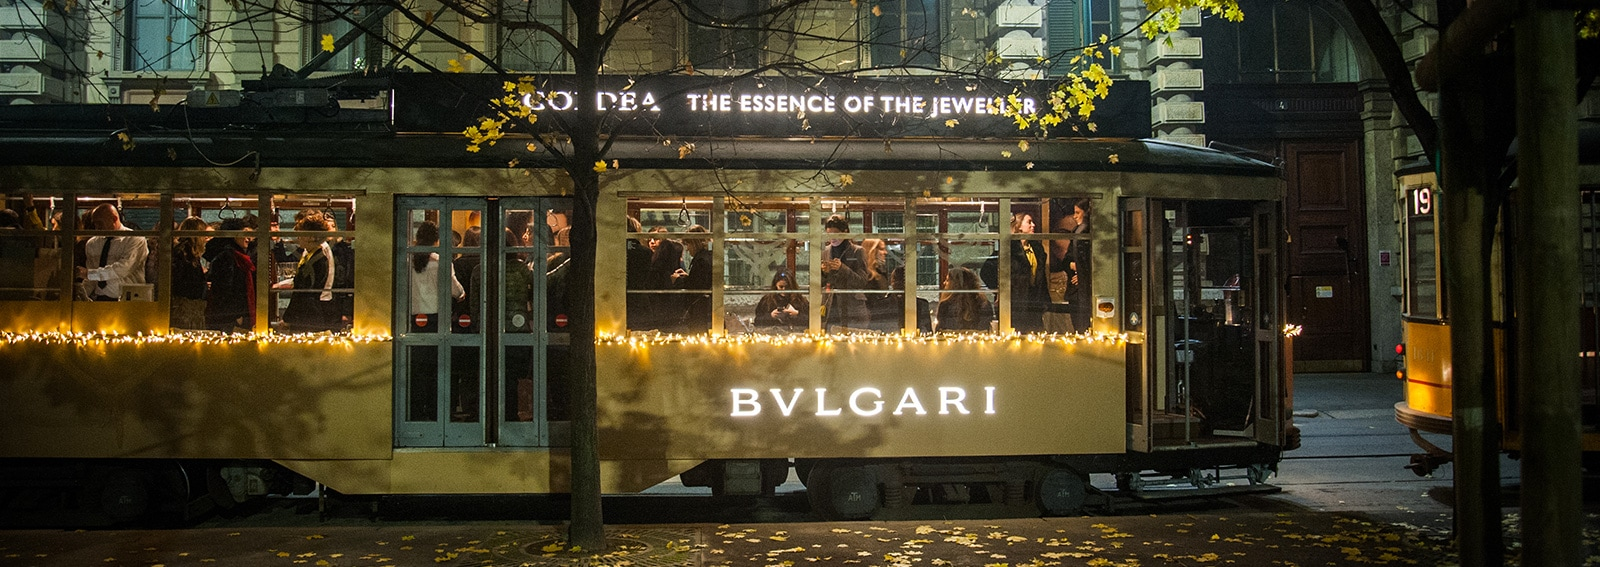 bulgari-goldea-wide